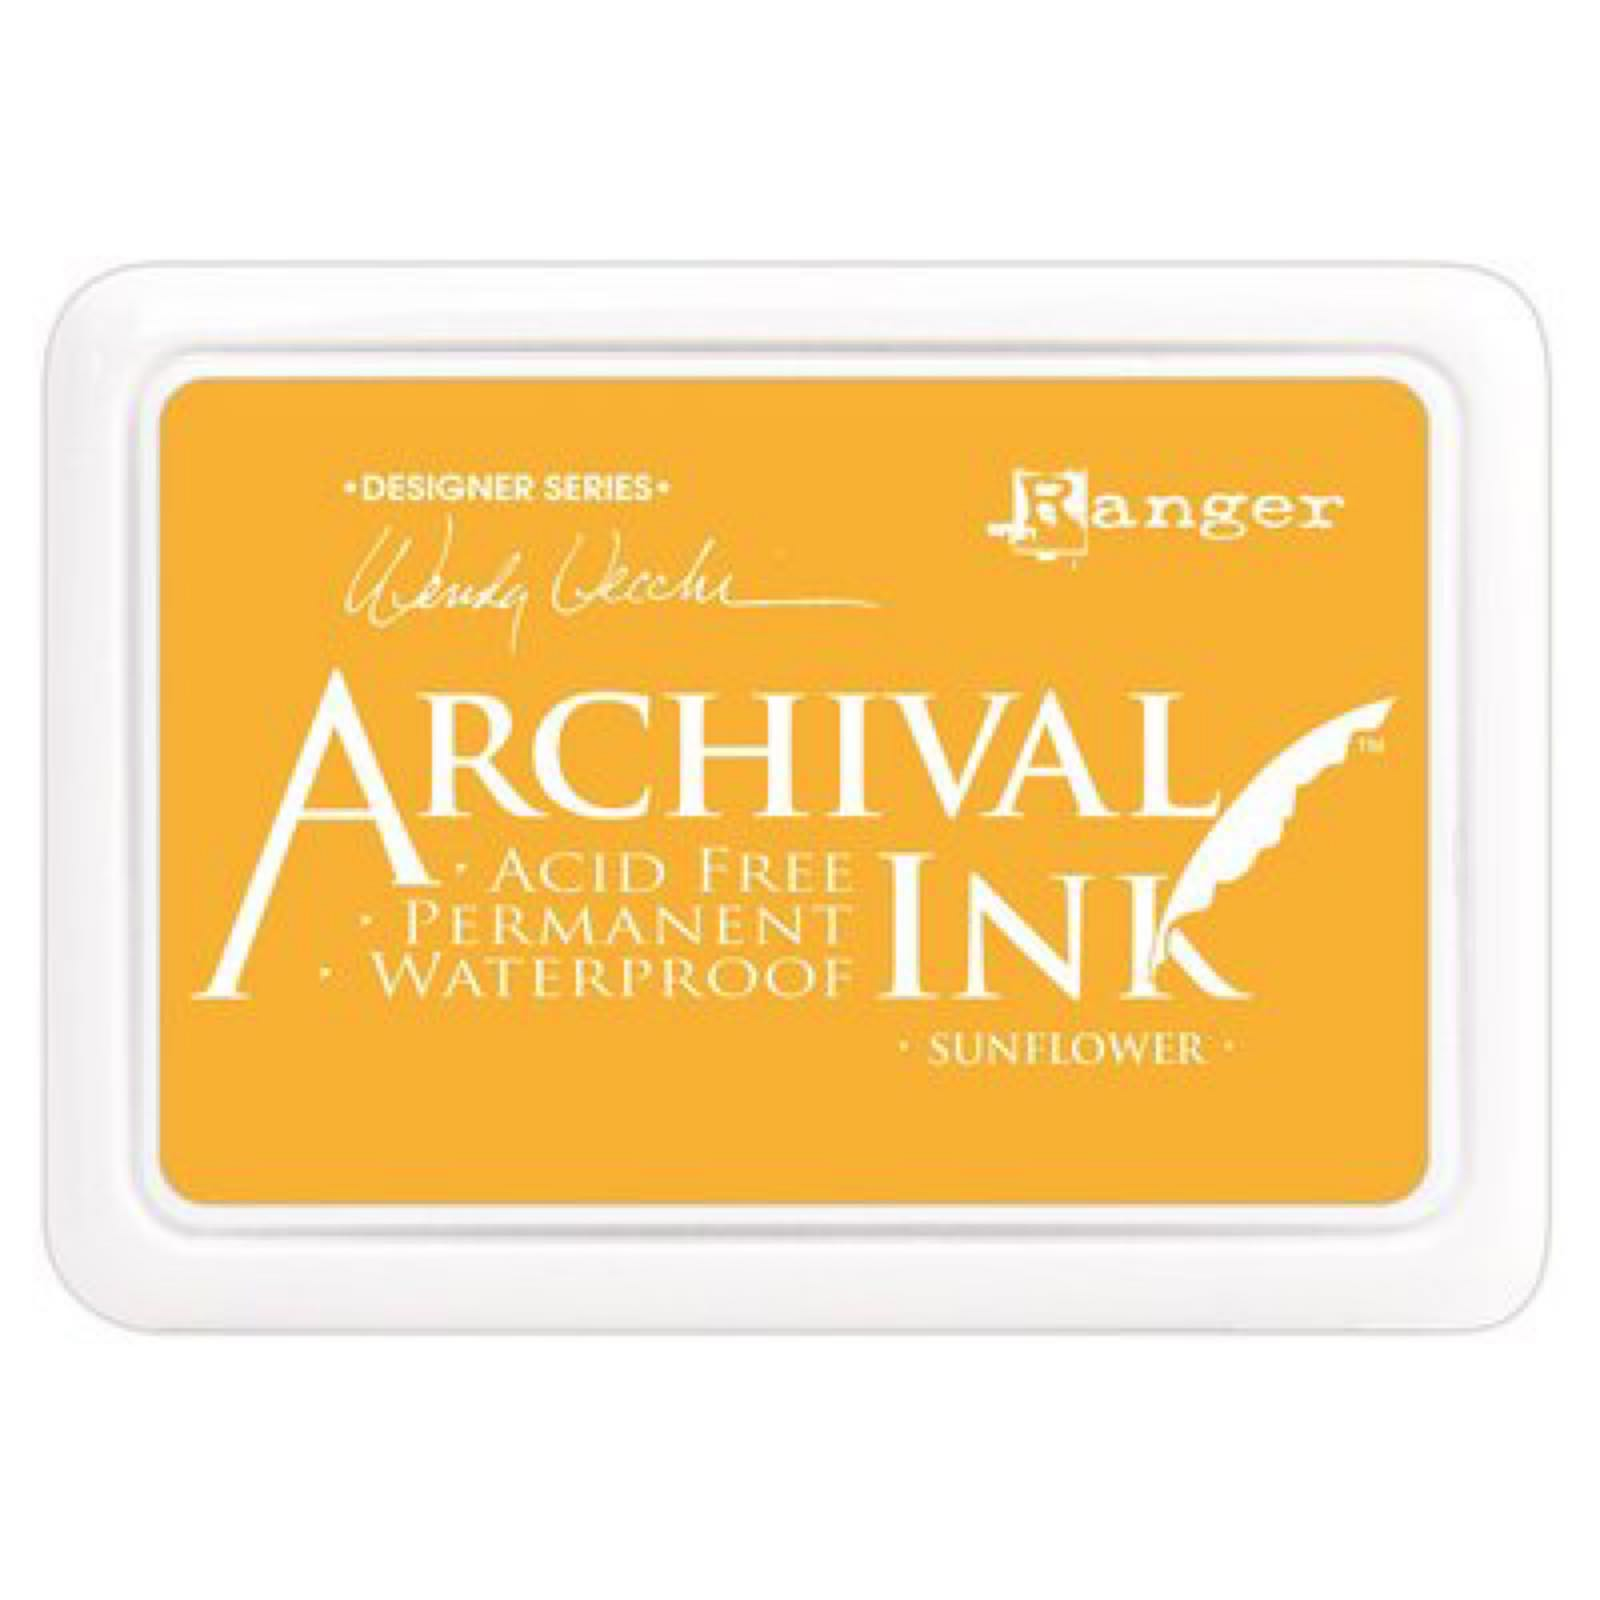 Ranger archival ink - Sunflower.